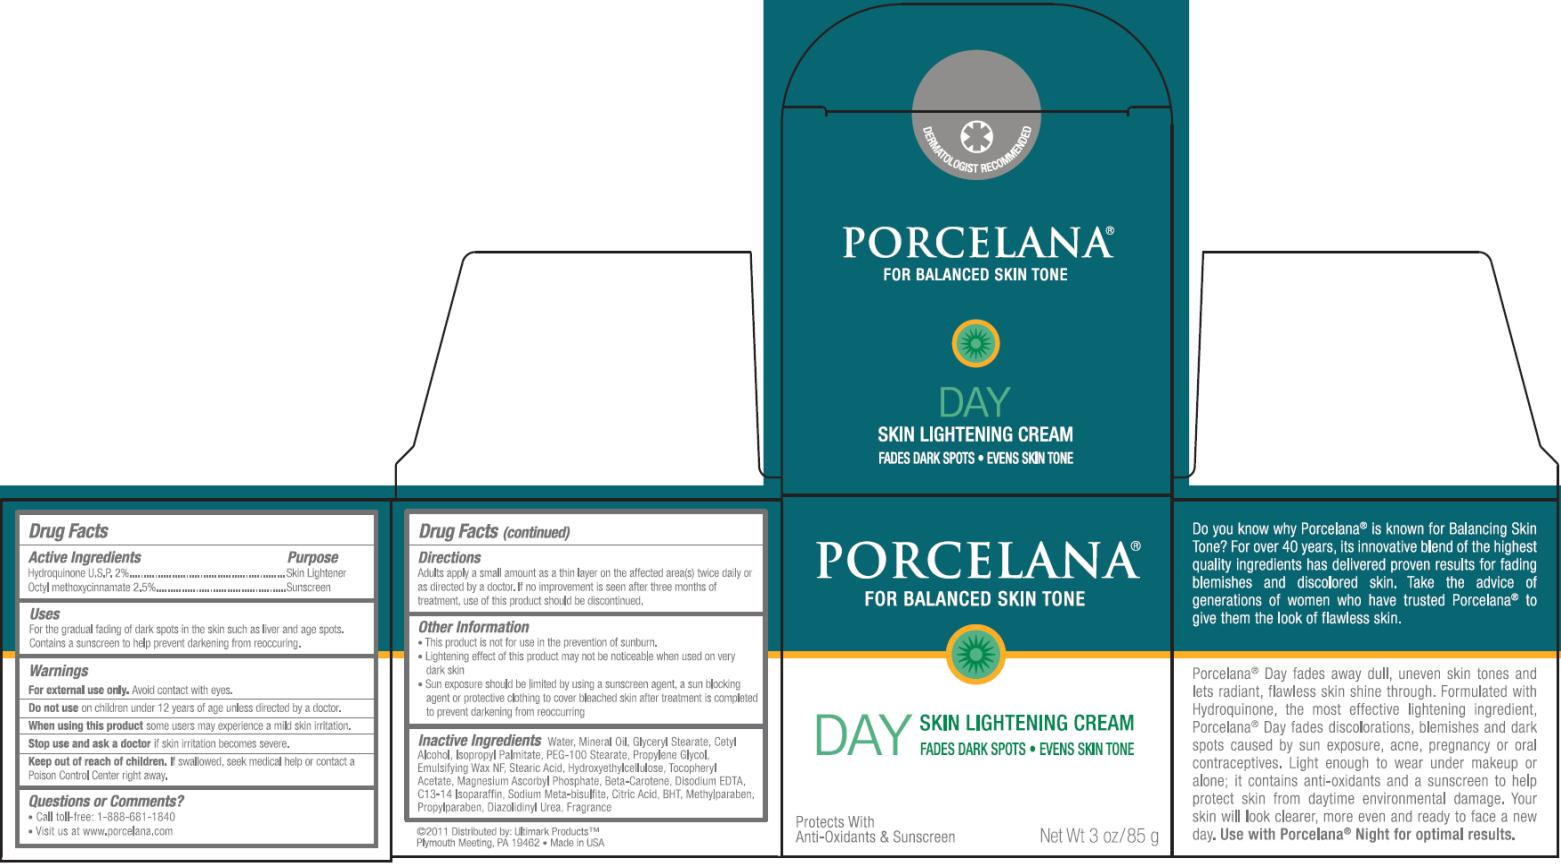 Porcelana Day Skin Lightening (Hydroquinone And Octinoxate) Cream [Ultimark Products Llc]